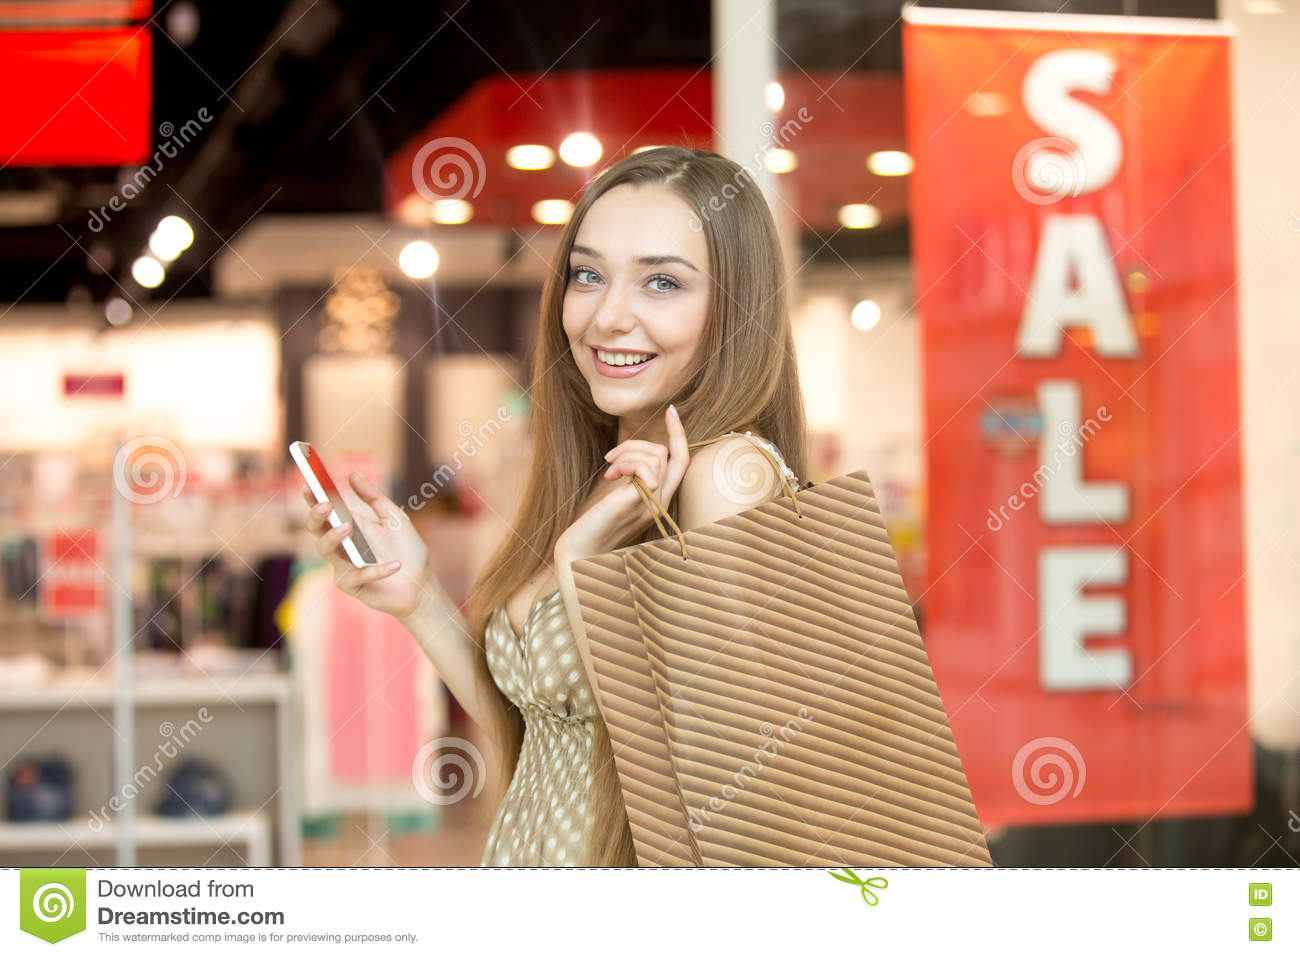 Young woman in a shopping centre holding a phone smiling